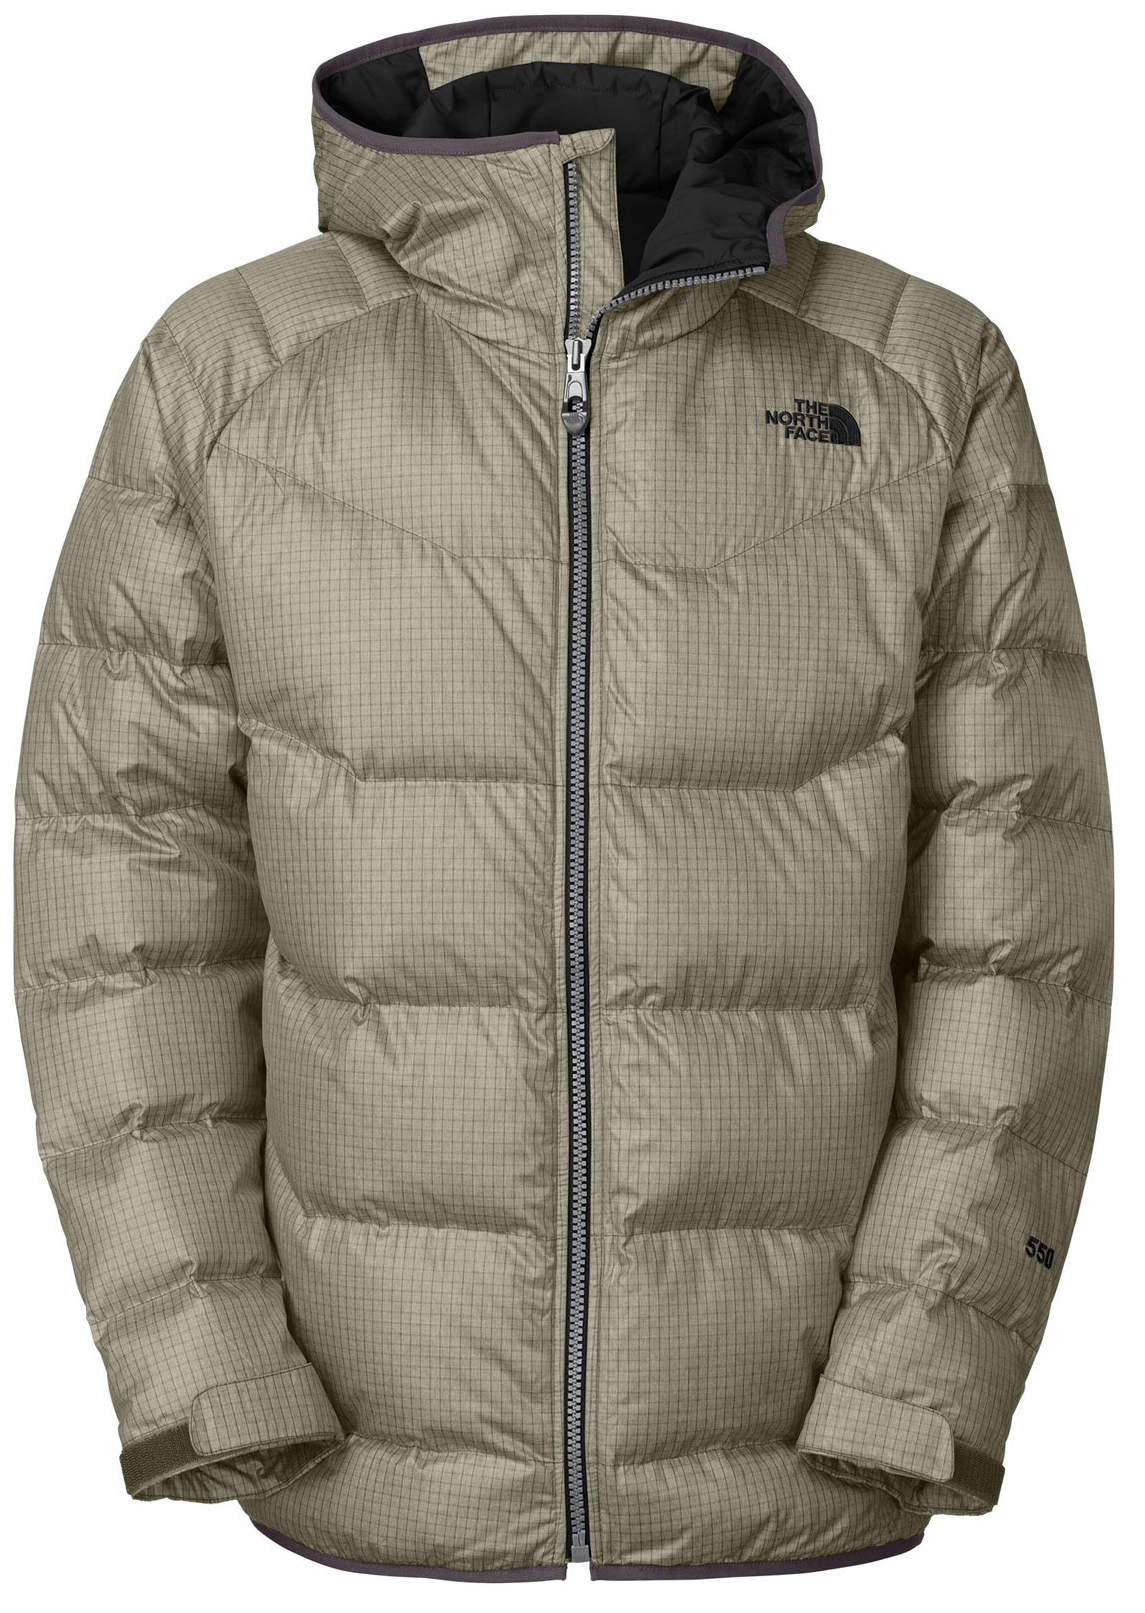 "Ski A lightweight, down riding jacket with a water-resistant, breathable ripstop shell and a snap-away powder skirt for going in deep. Key Features of The North Face Landover Down Ski Jacket: Avg Weight: 794 g (28.01 oz) Center back: 30.25"" Fabric: shell: 2L ripstop with DWR Lining: taffeta Insulation: 550 fill down Water-resistant, breathable Adjustable fixed hood Handwarmer zip pockets Internal media security pocket Internal goggle pocket Snap-down powder skirt with elastic gripper Hook-and-loop adjustable cuffs - $173.95"